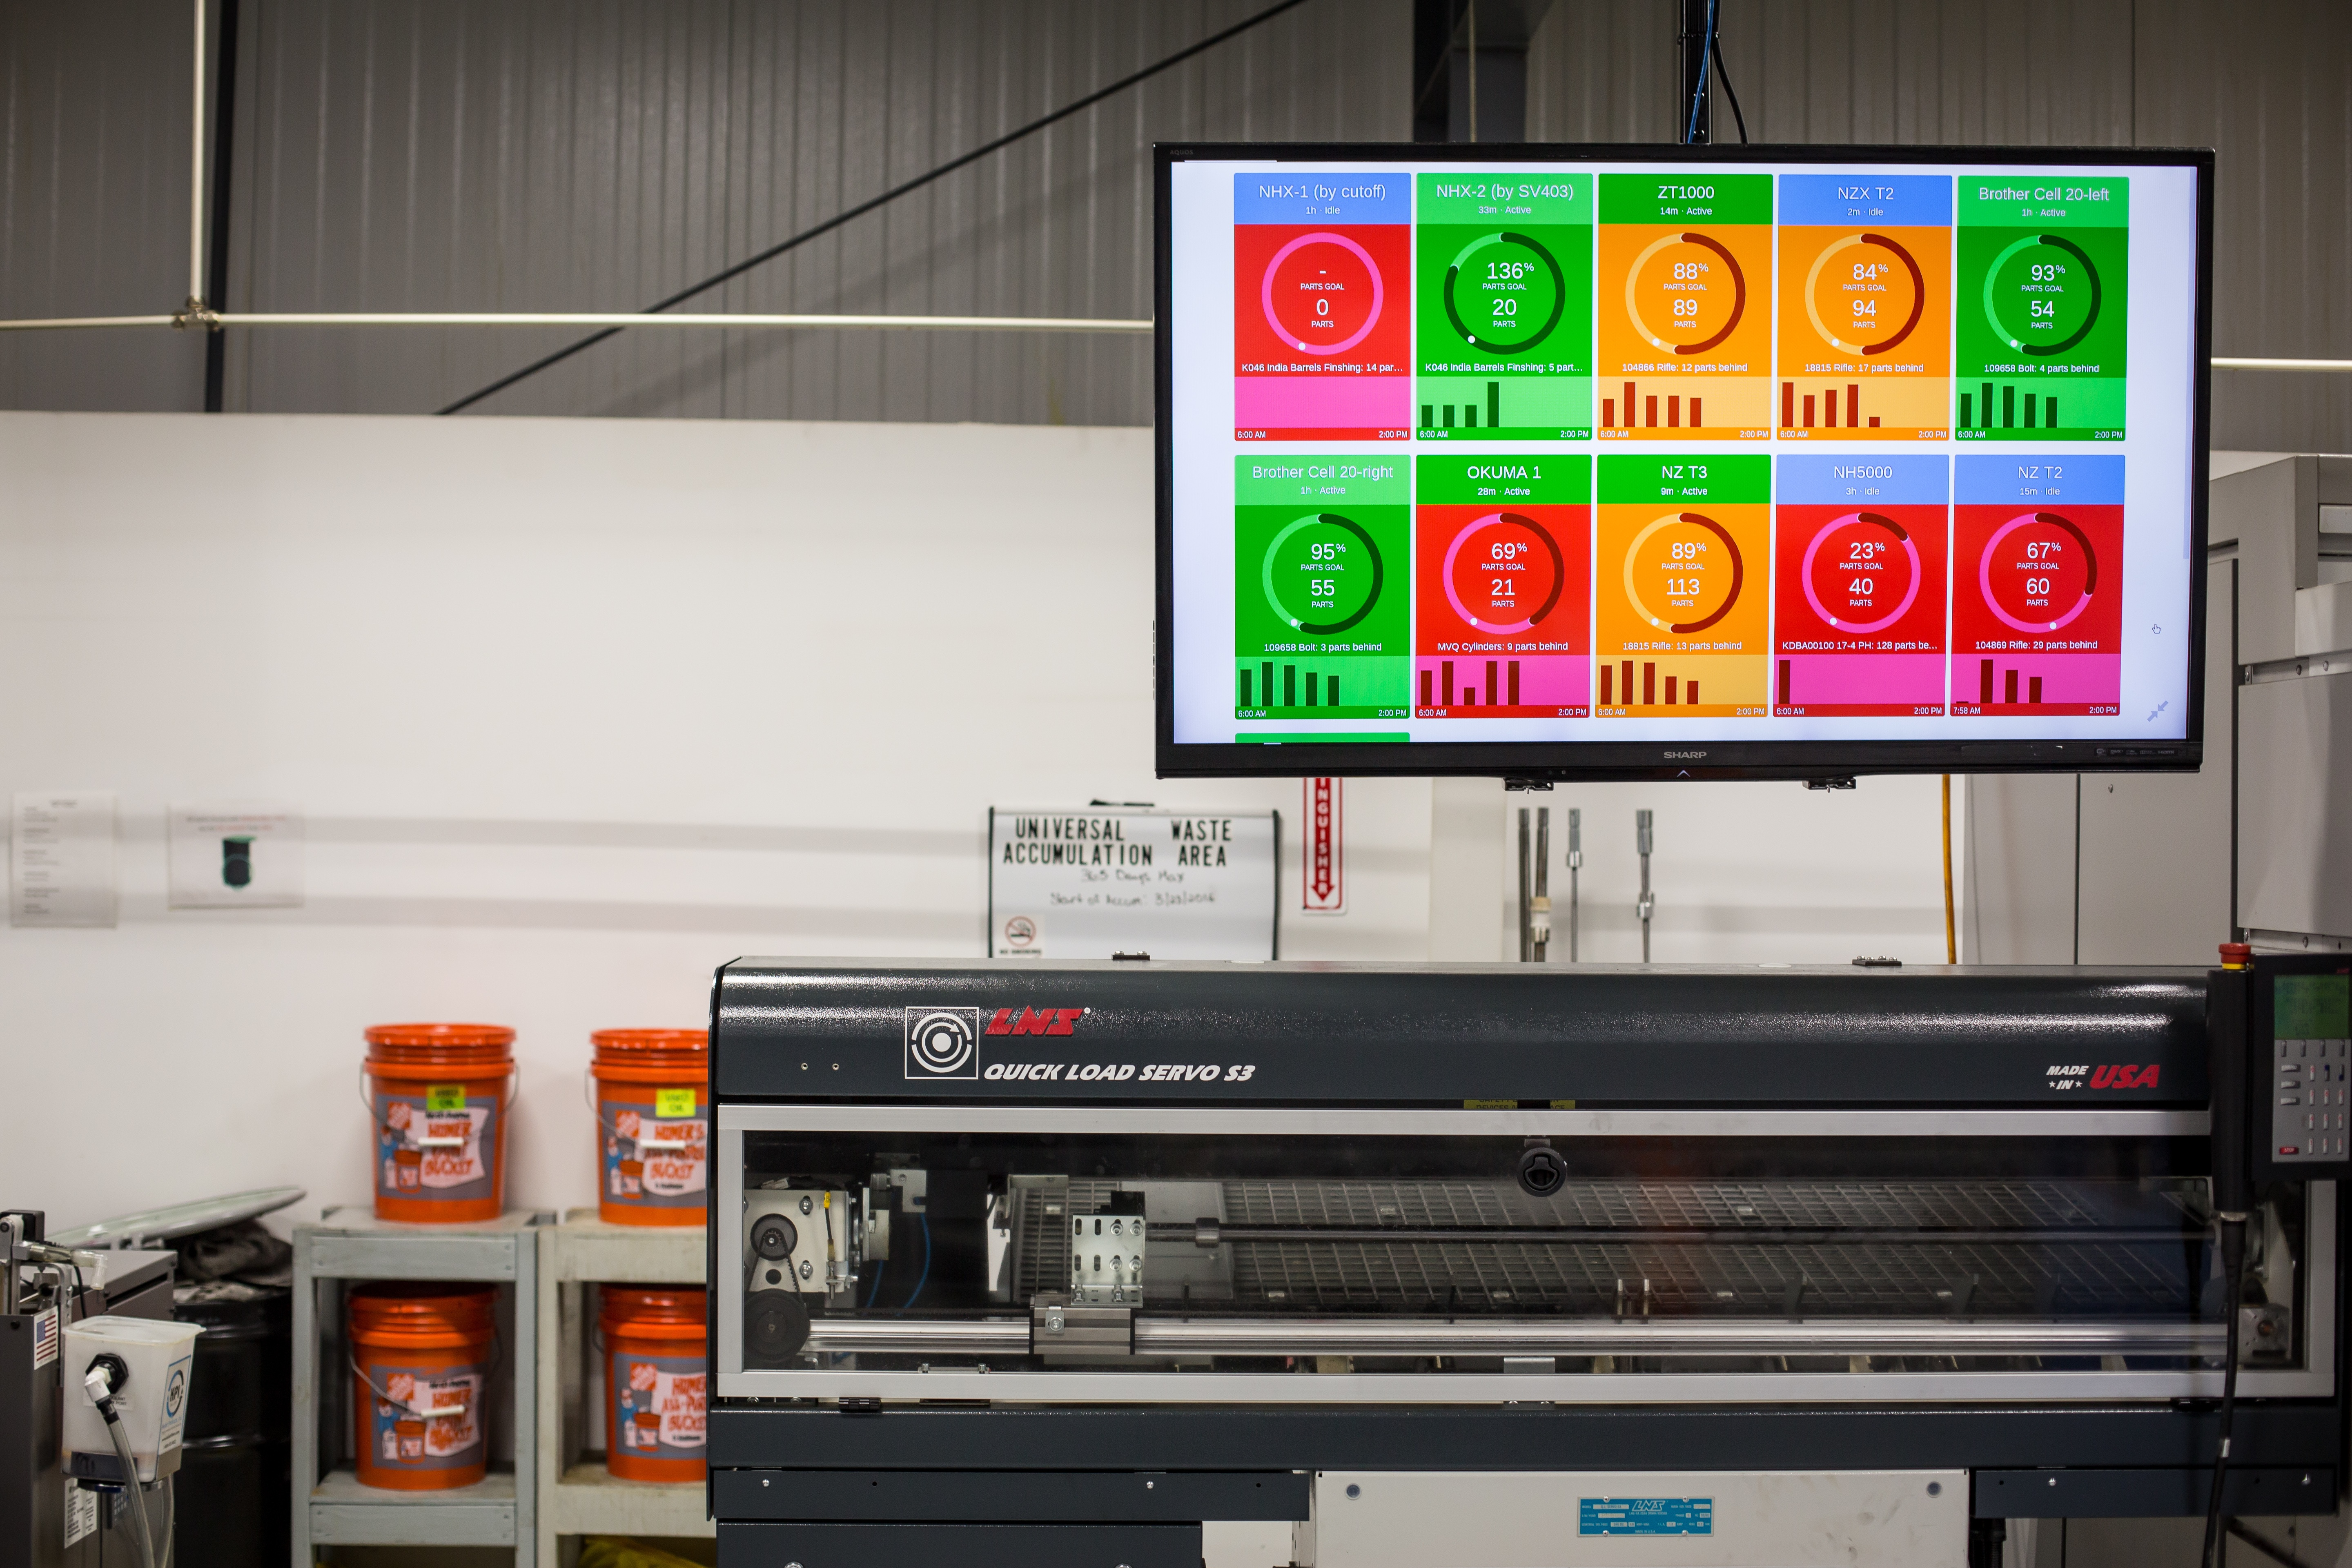 CNC Machine Monitoring & OEE Software collecting data on a shop floor